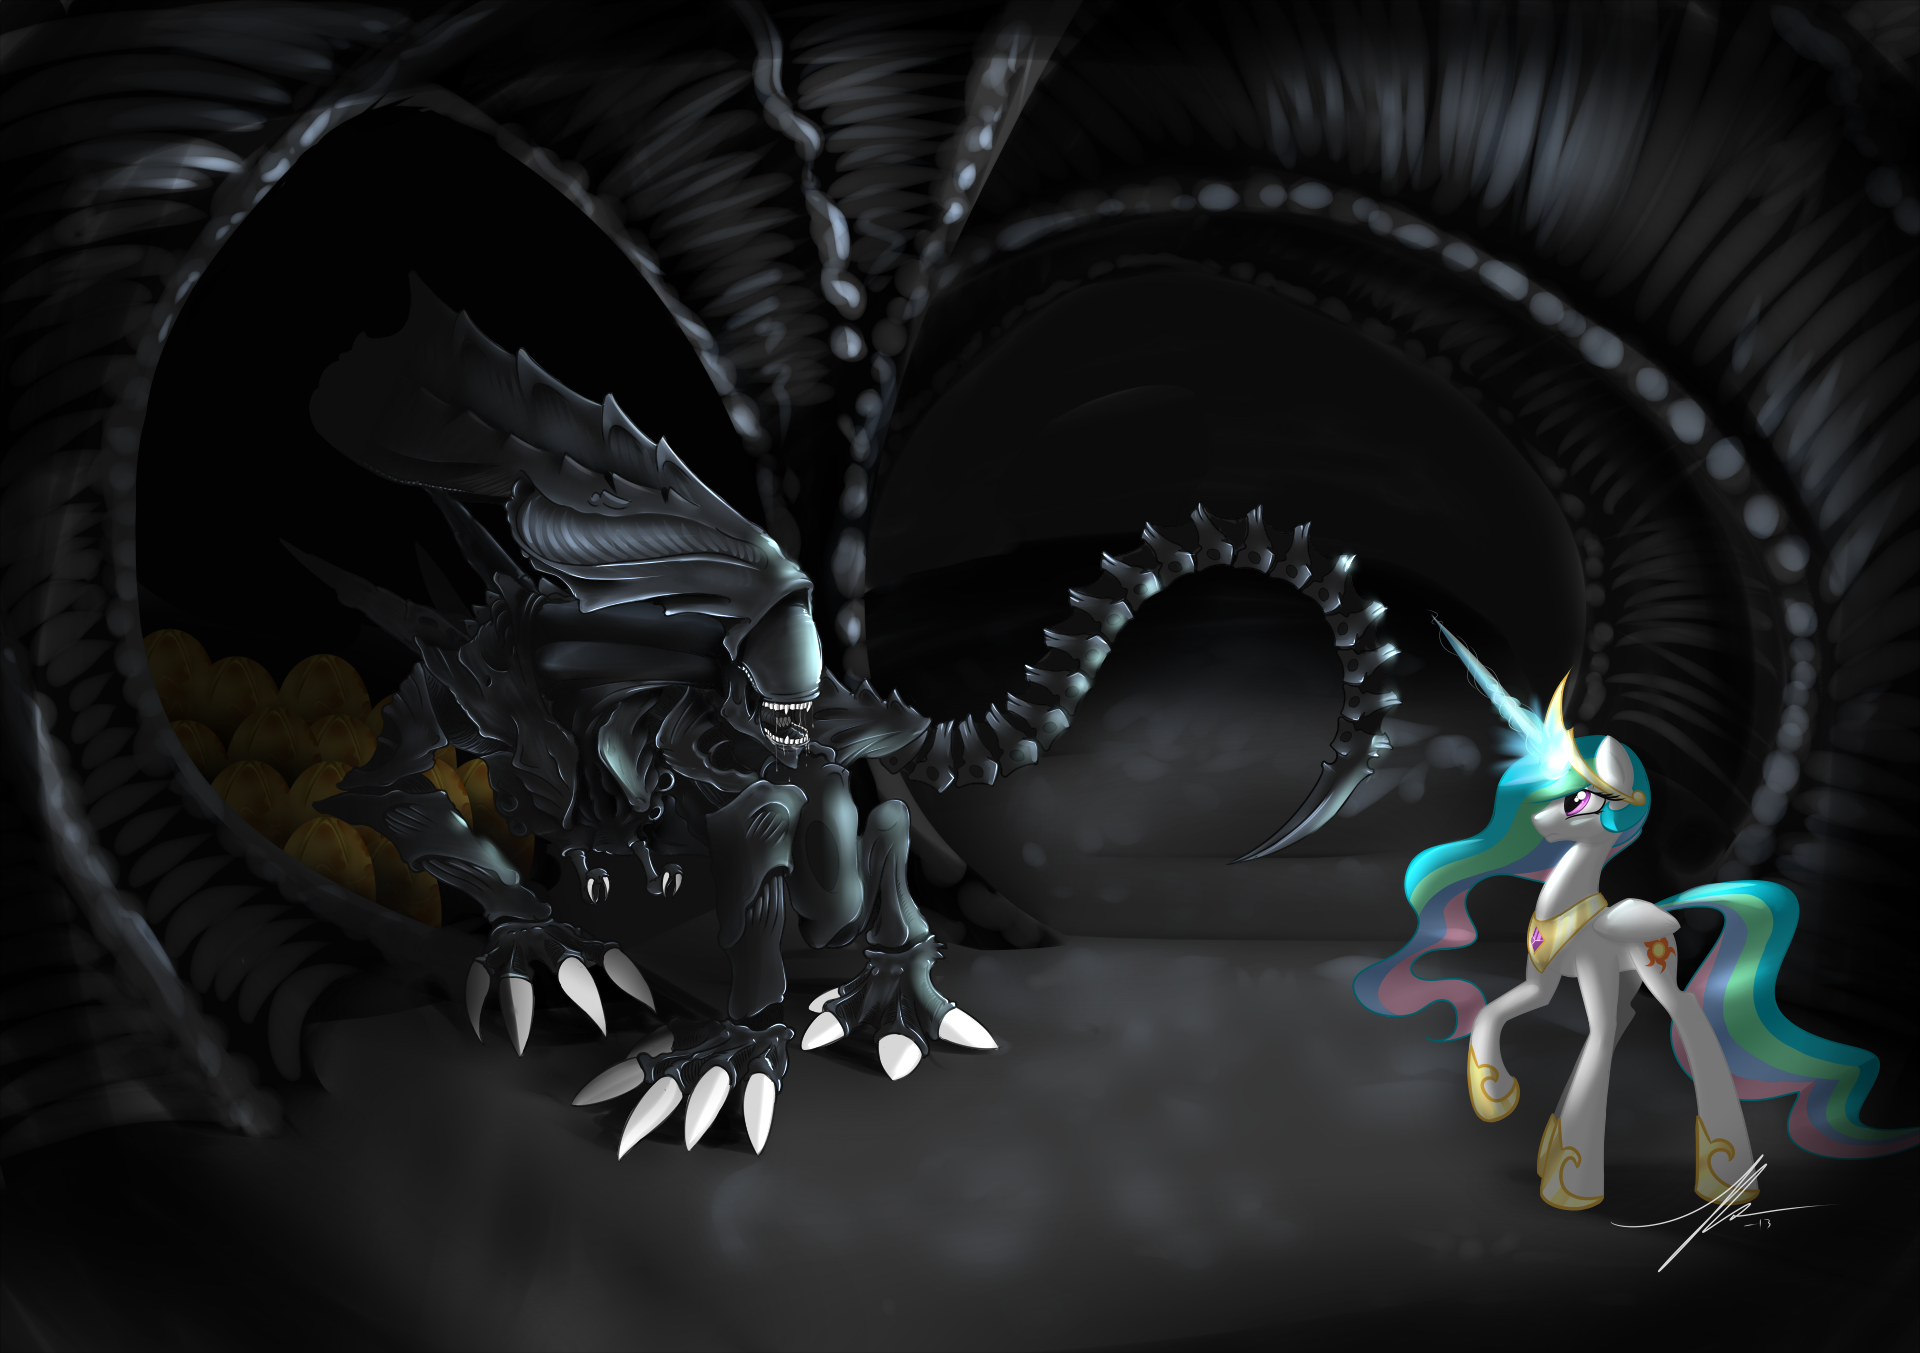 Celestia Vs Xenomorph Queen My Little Pony Friendship Is